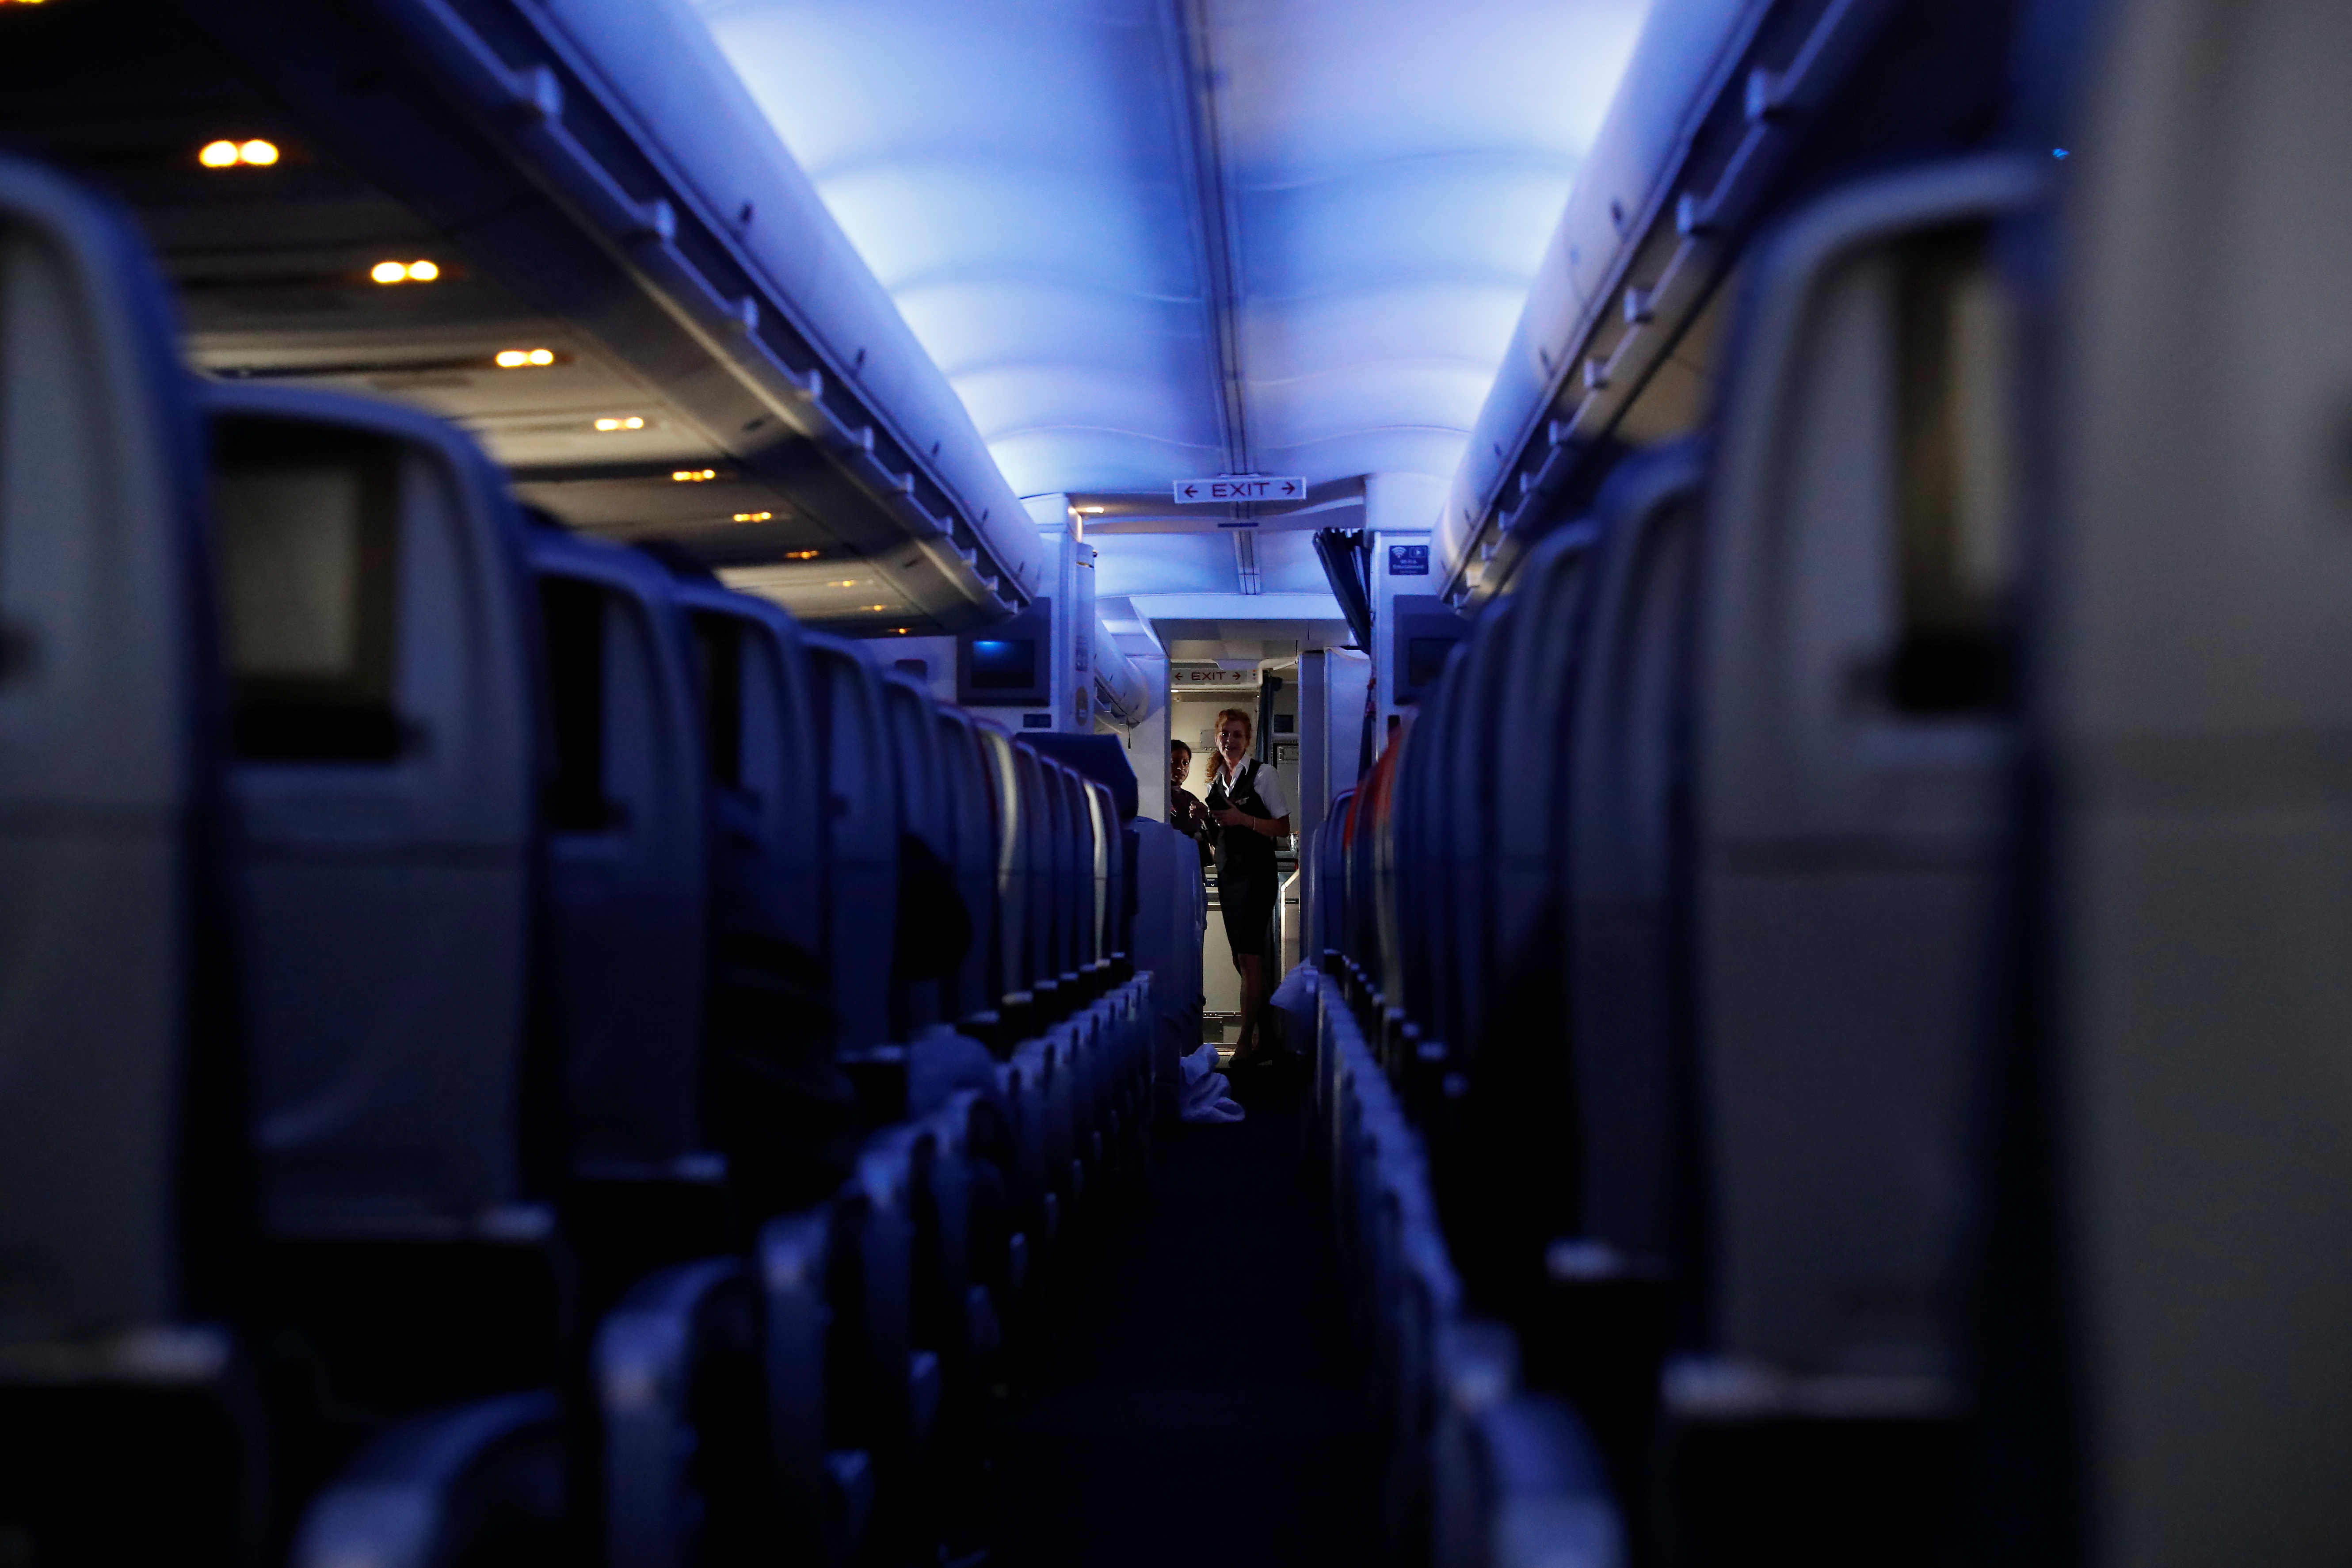 Flight attendants stand at the end of rows of empty seats aboard a Delta flight, as coronavirus disease (COVID-19) disruption continues across the global industry, from New York's JFK International Airport to San Francisco, California, U.S., March 17, 2020. REUTERS/Shannon Stapleton